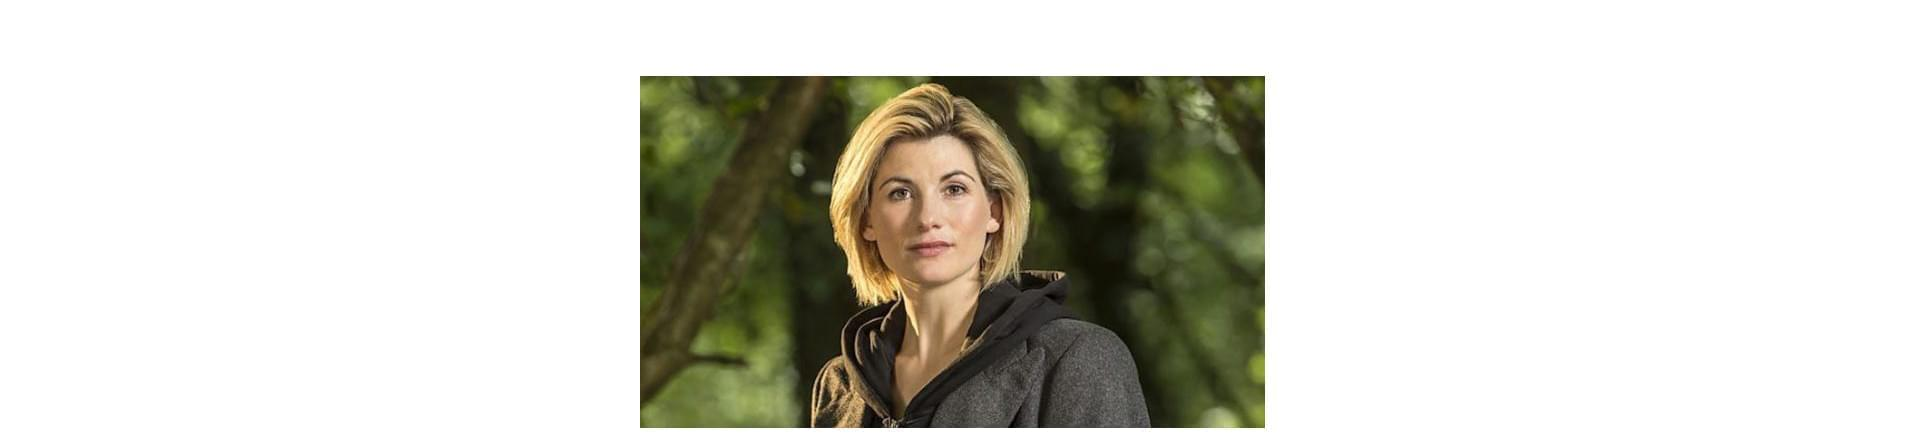 Jodie Whittaker, the 13th person to play Doctor Who and the first female to play this role.